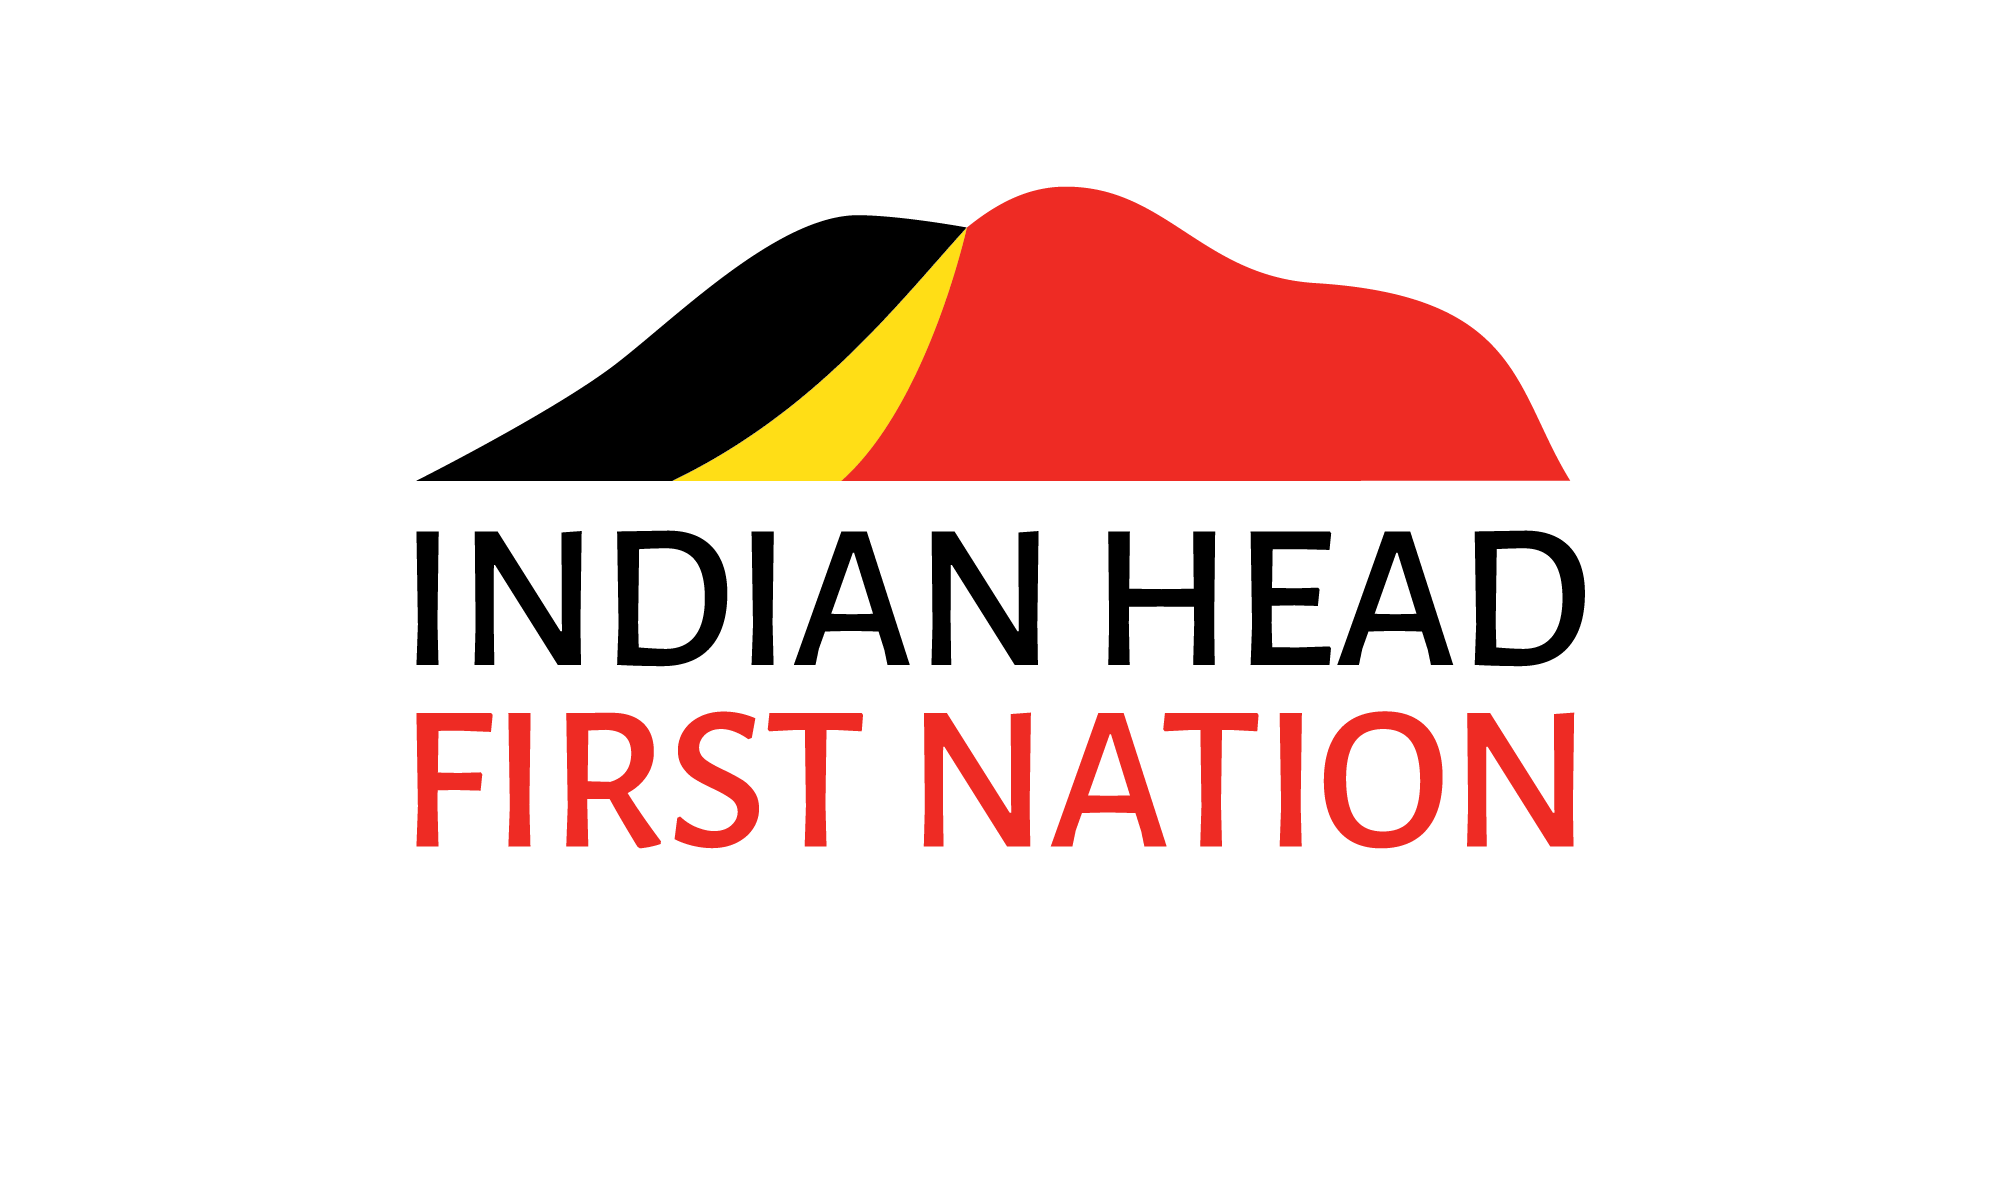 Indian Head First Nation